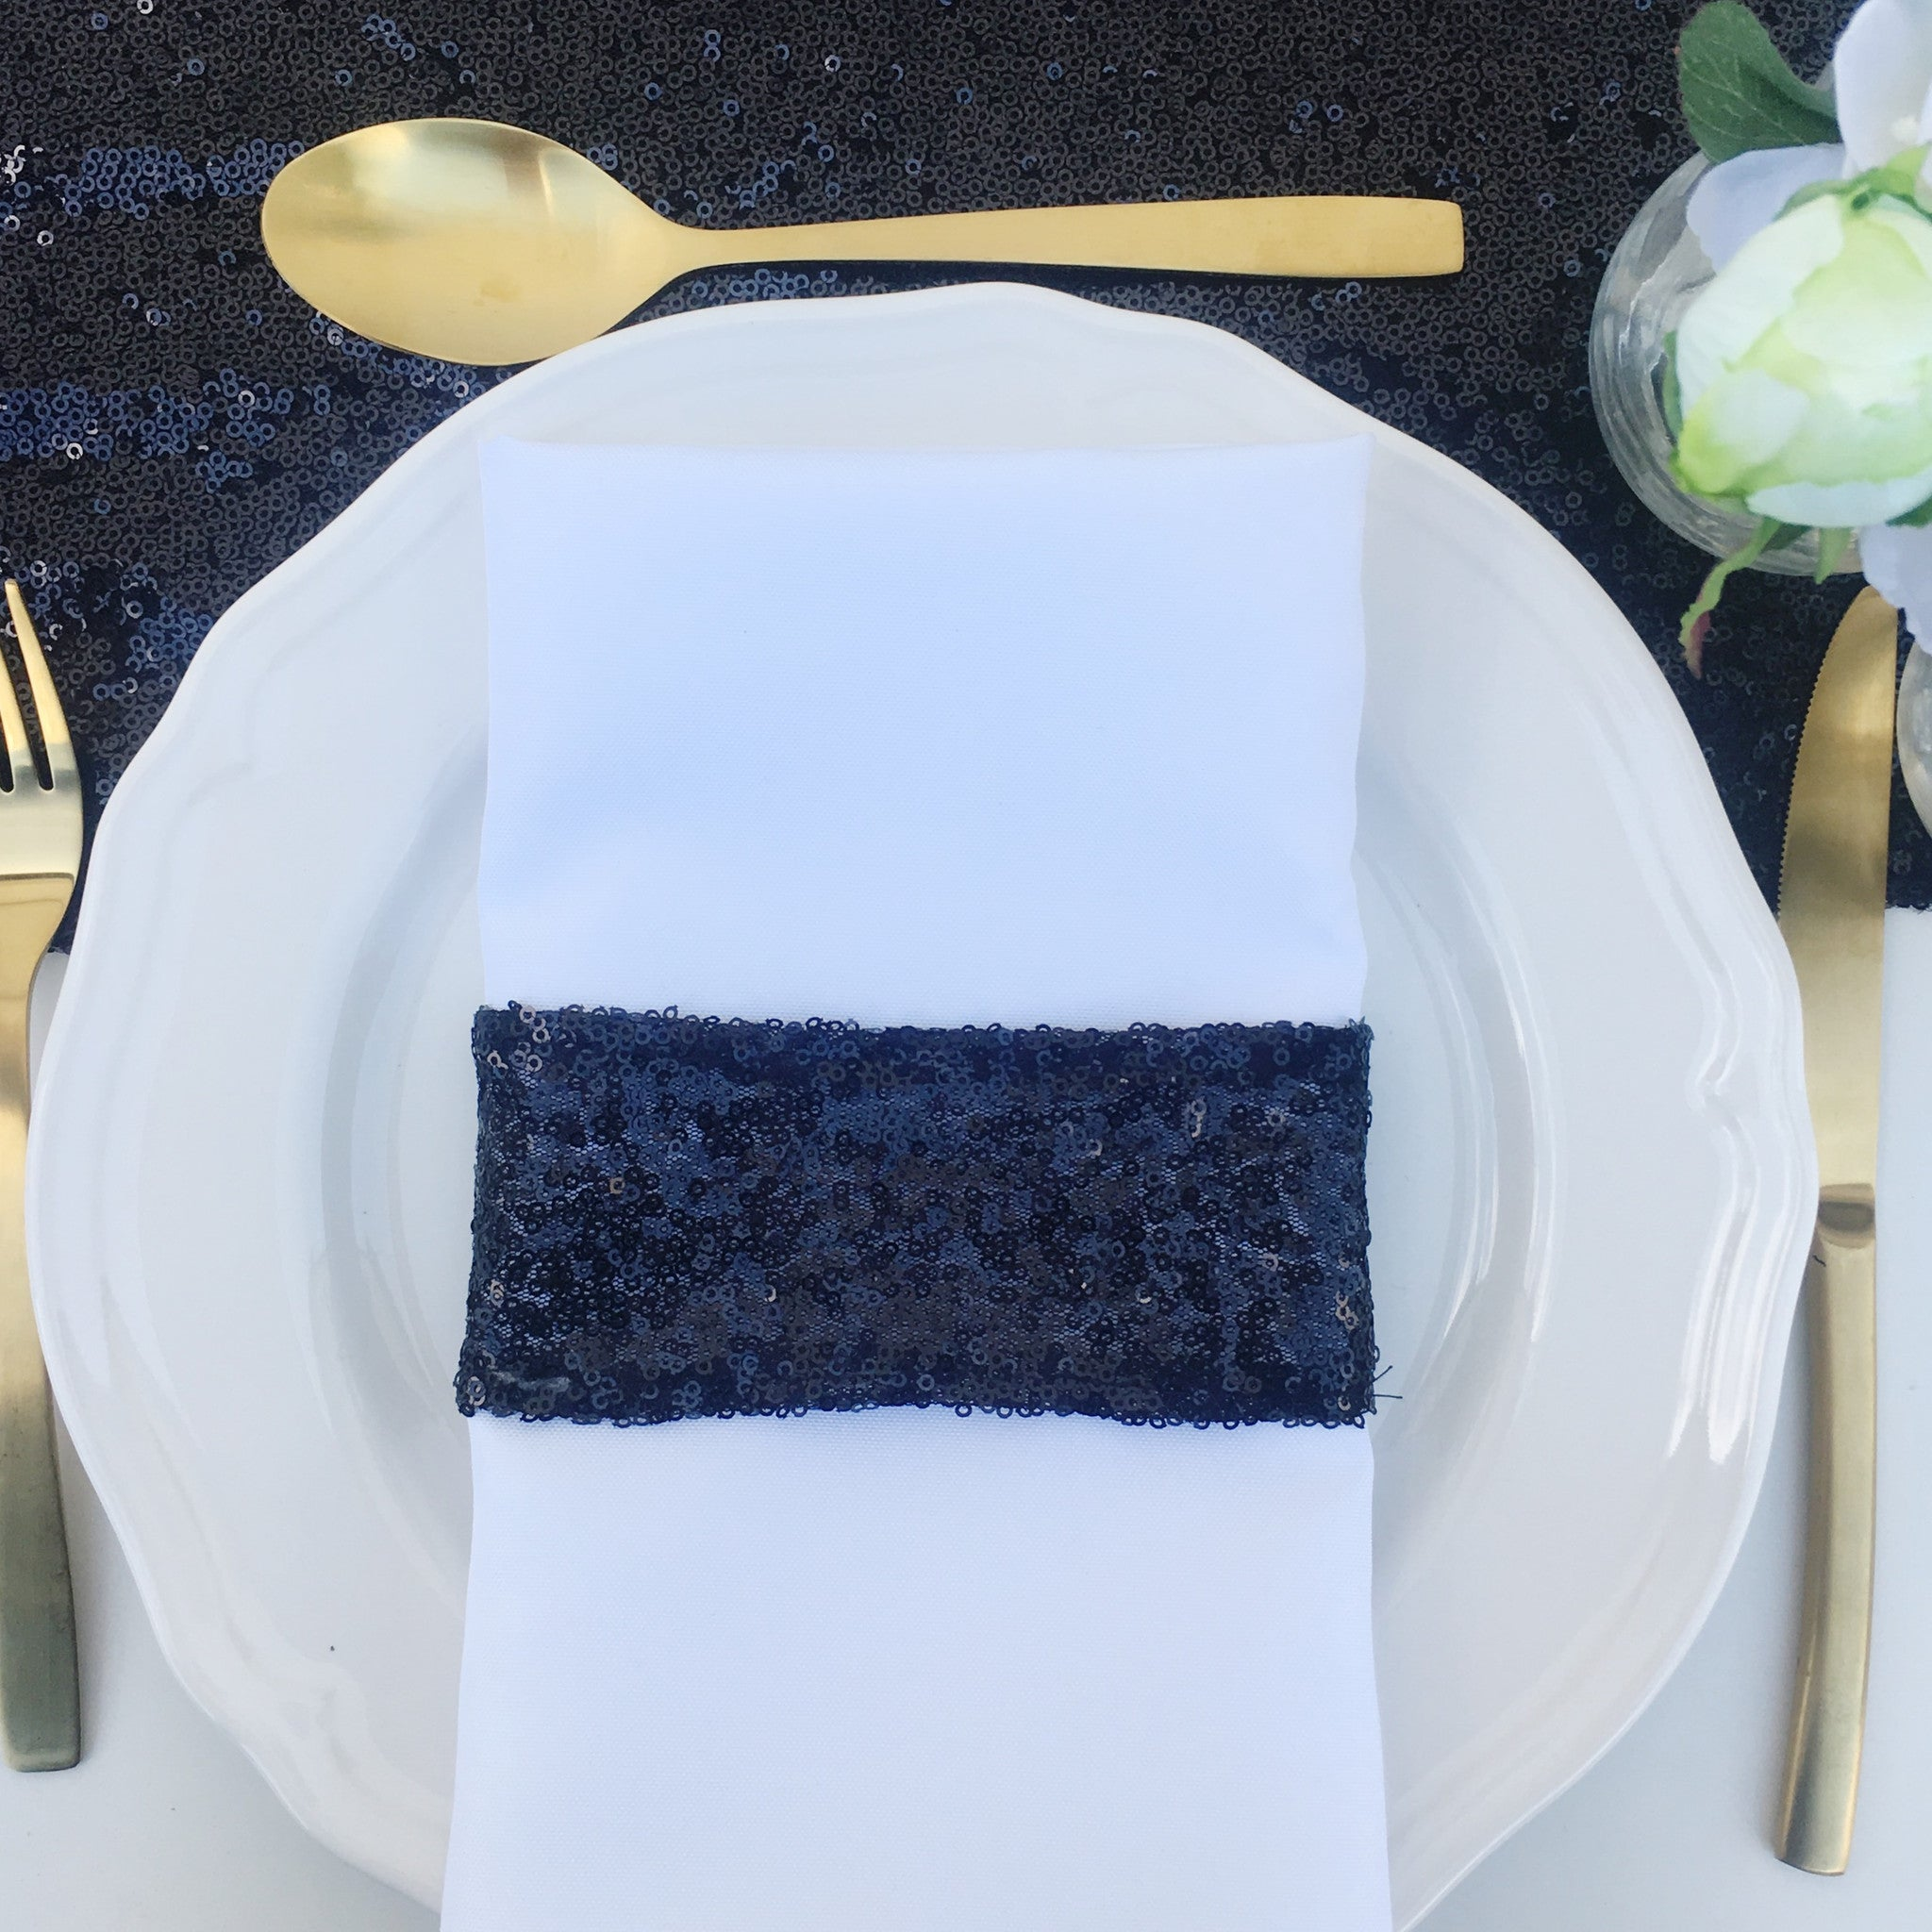 Black Sequin Napkin Holder - The Sweet Hostess